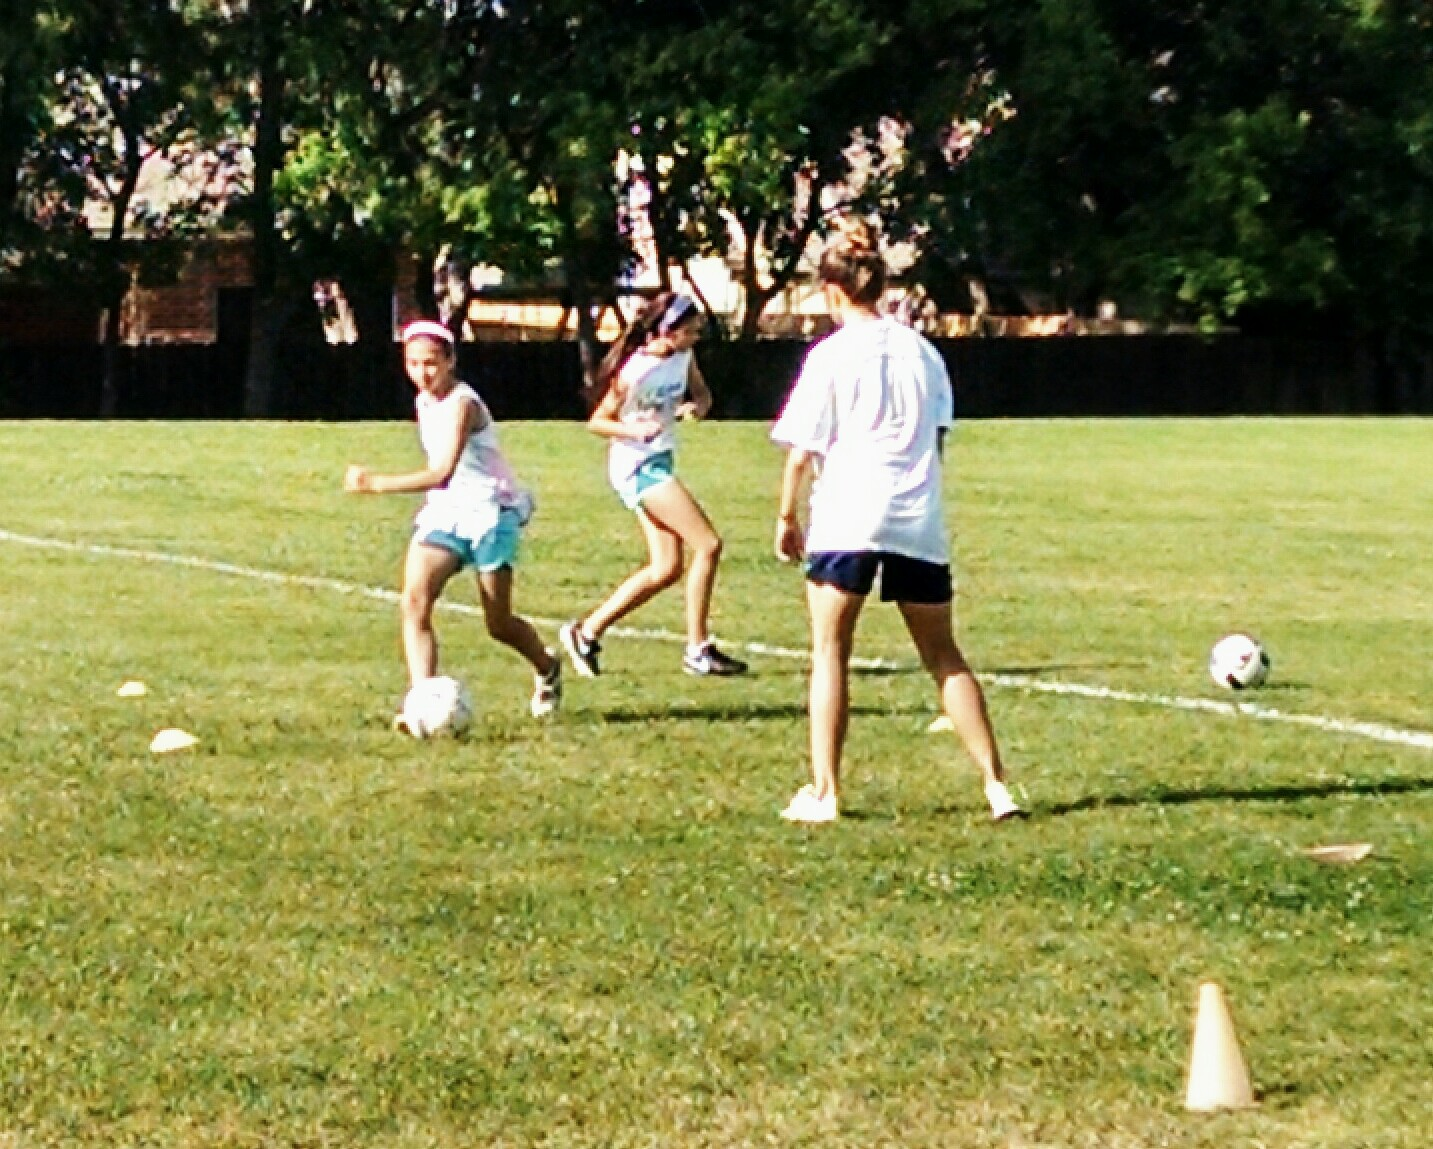 private soccer coach global futbol training gft skills trainer dallas fort worth southlake keller flower mound, TX best coach Coppell